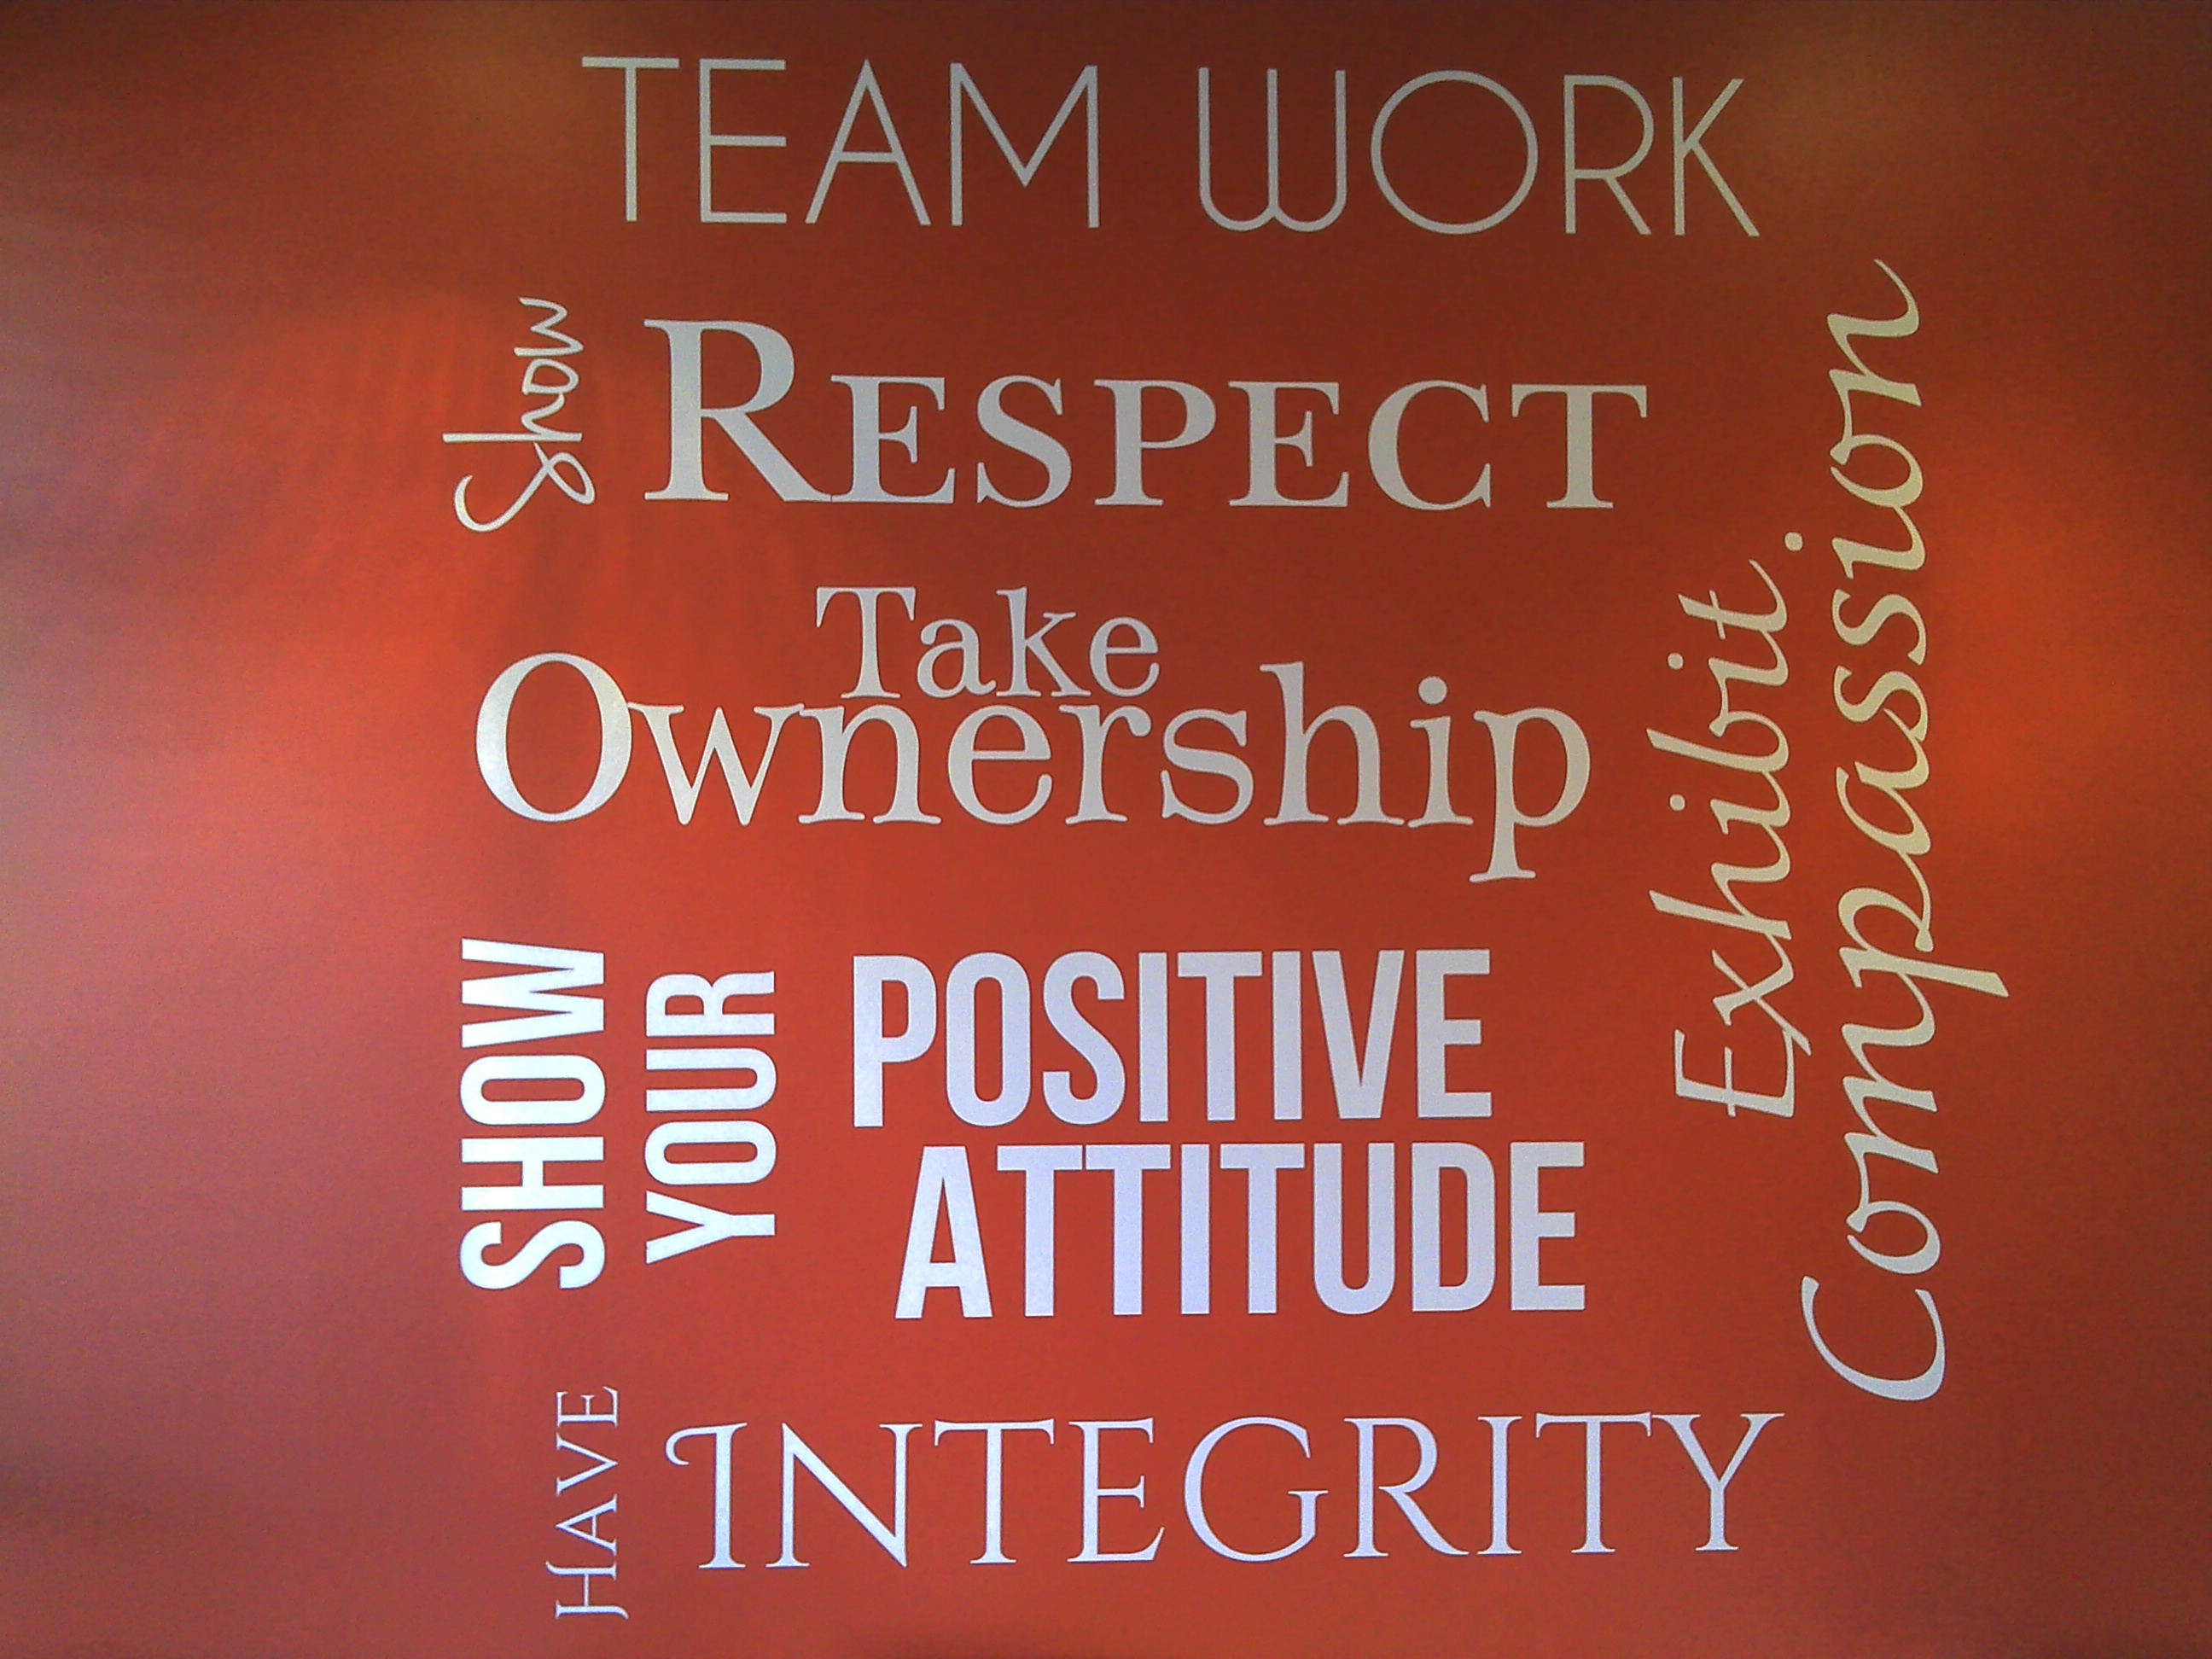 Phoenix Conference Room 'Values' Wall